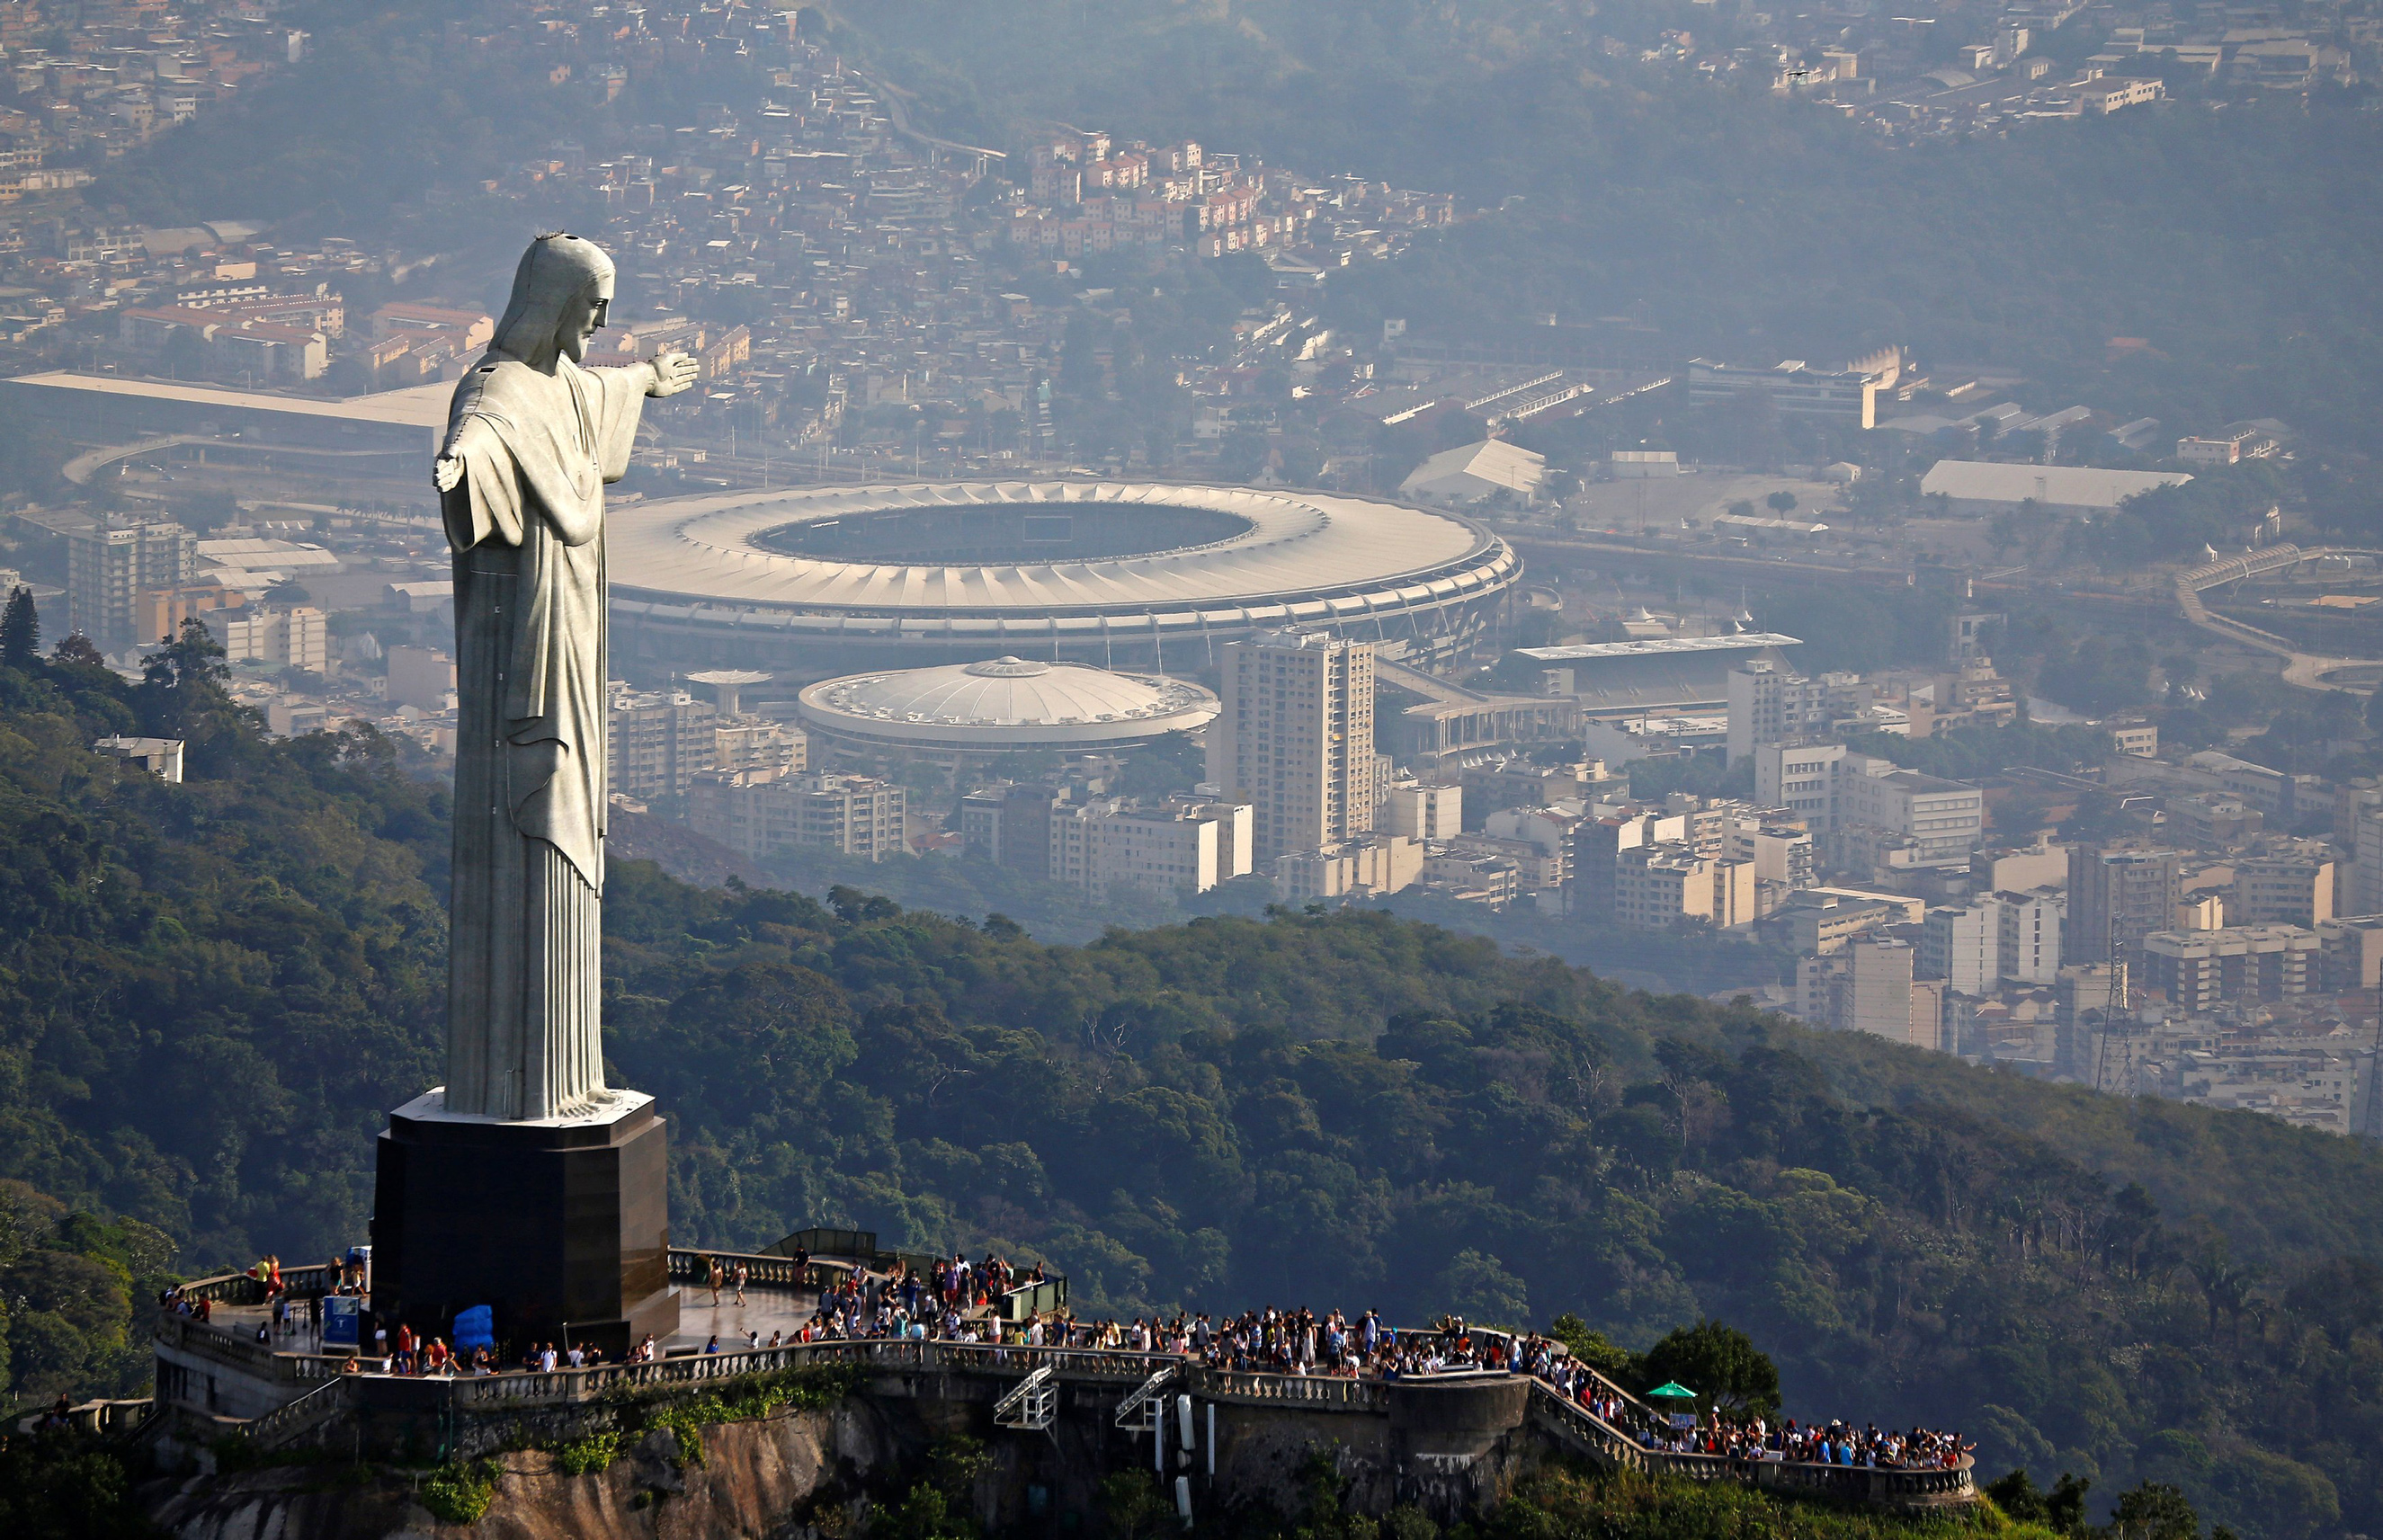 An aerial view shows Christ the Redeemer atop the Corcovado mountain in Rio de Janeiro on July 16, 2016.